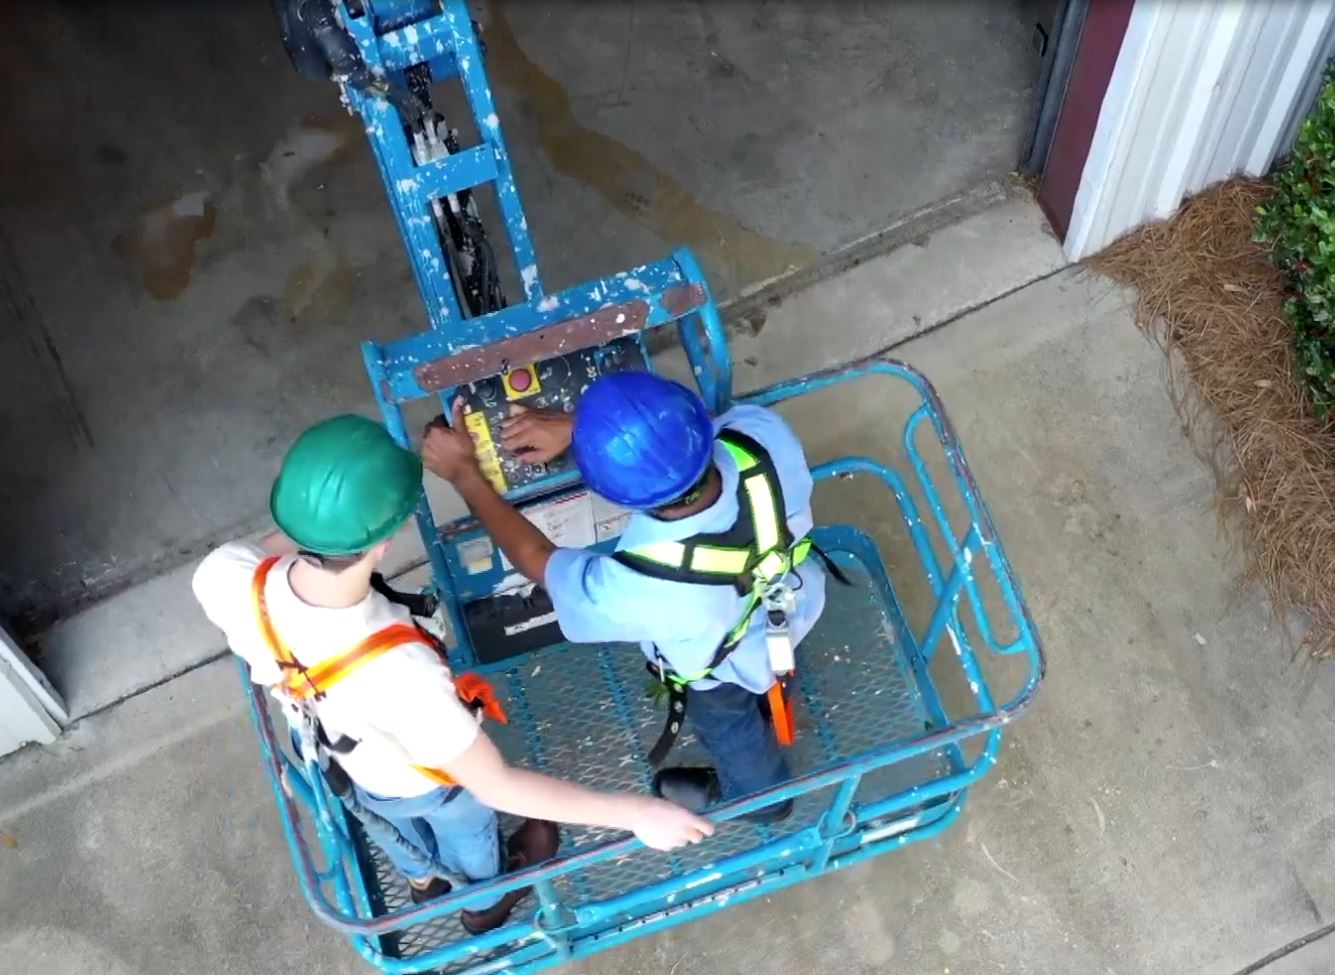 Workers attempting to avoid serious injury while operating a variety of elevated work platforms